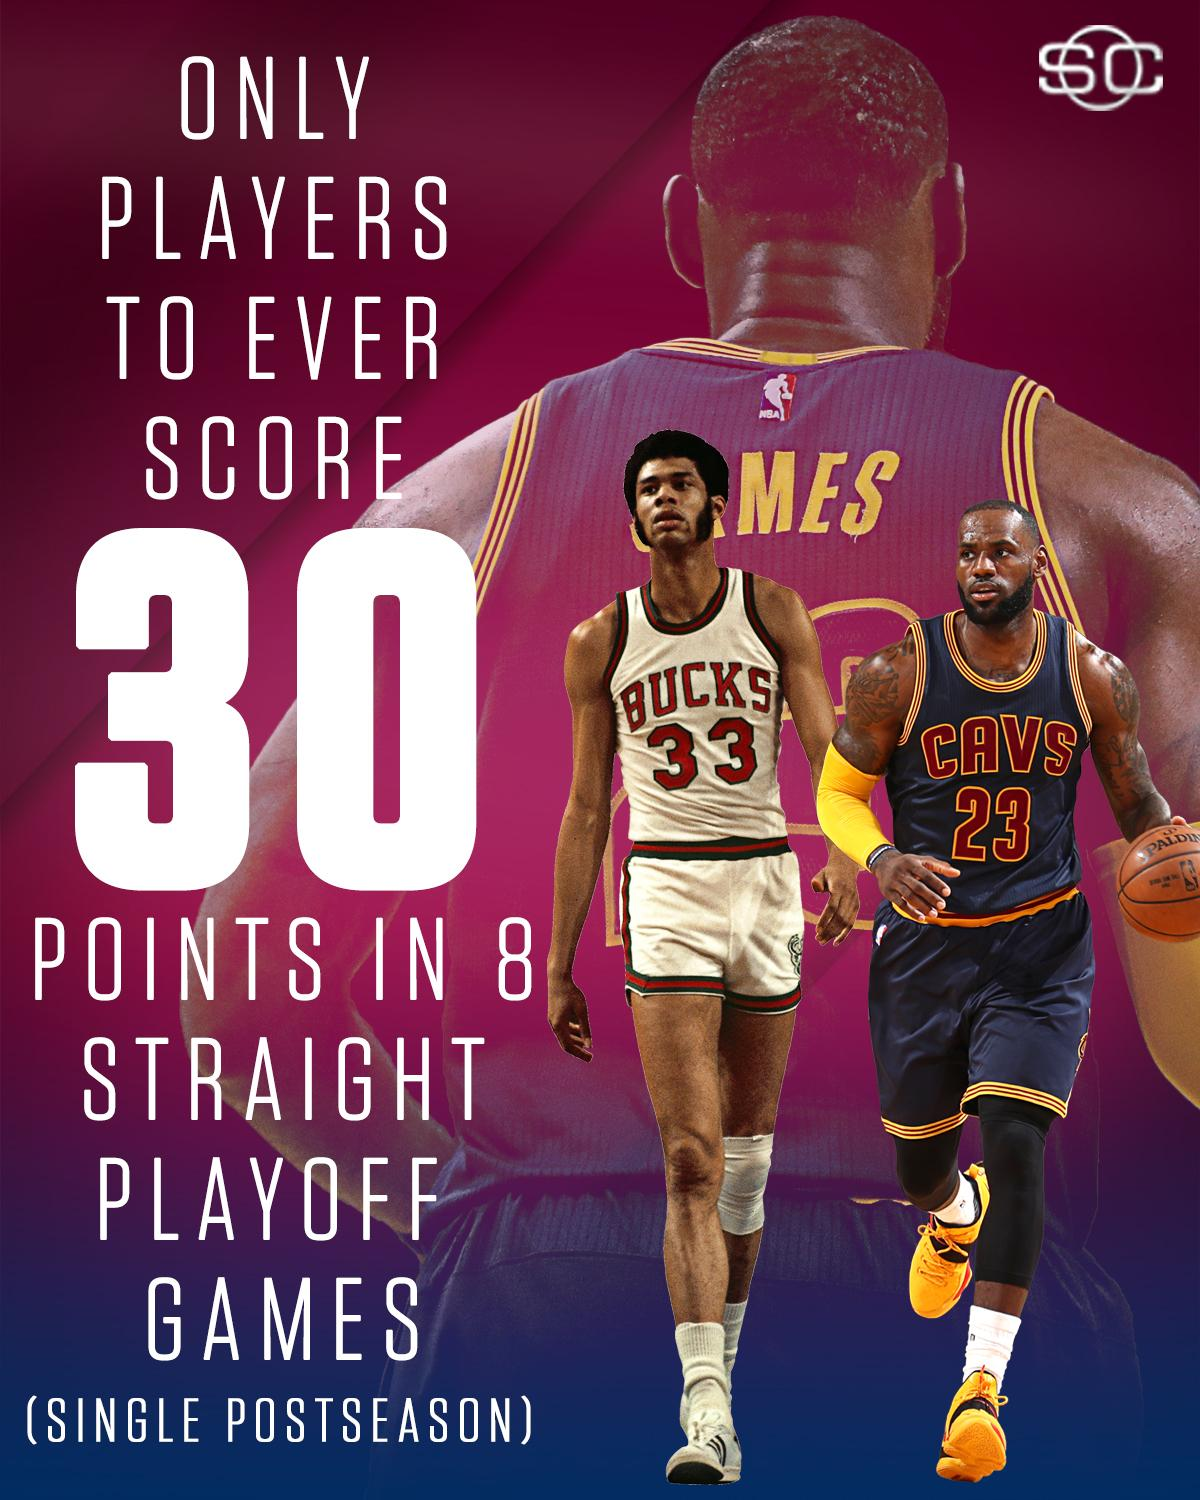 King James is doing something that only Kareem Abdul-Jabbar has done in 1970. (via @EliasSports) https://t.co/tDKXTuX0Kv